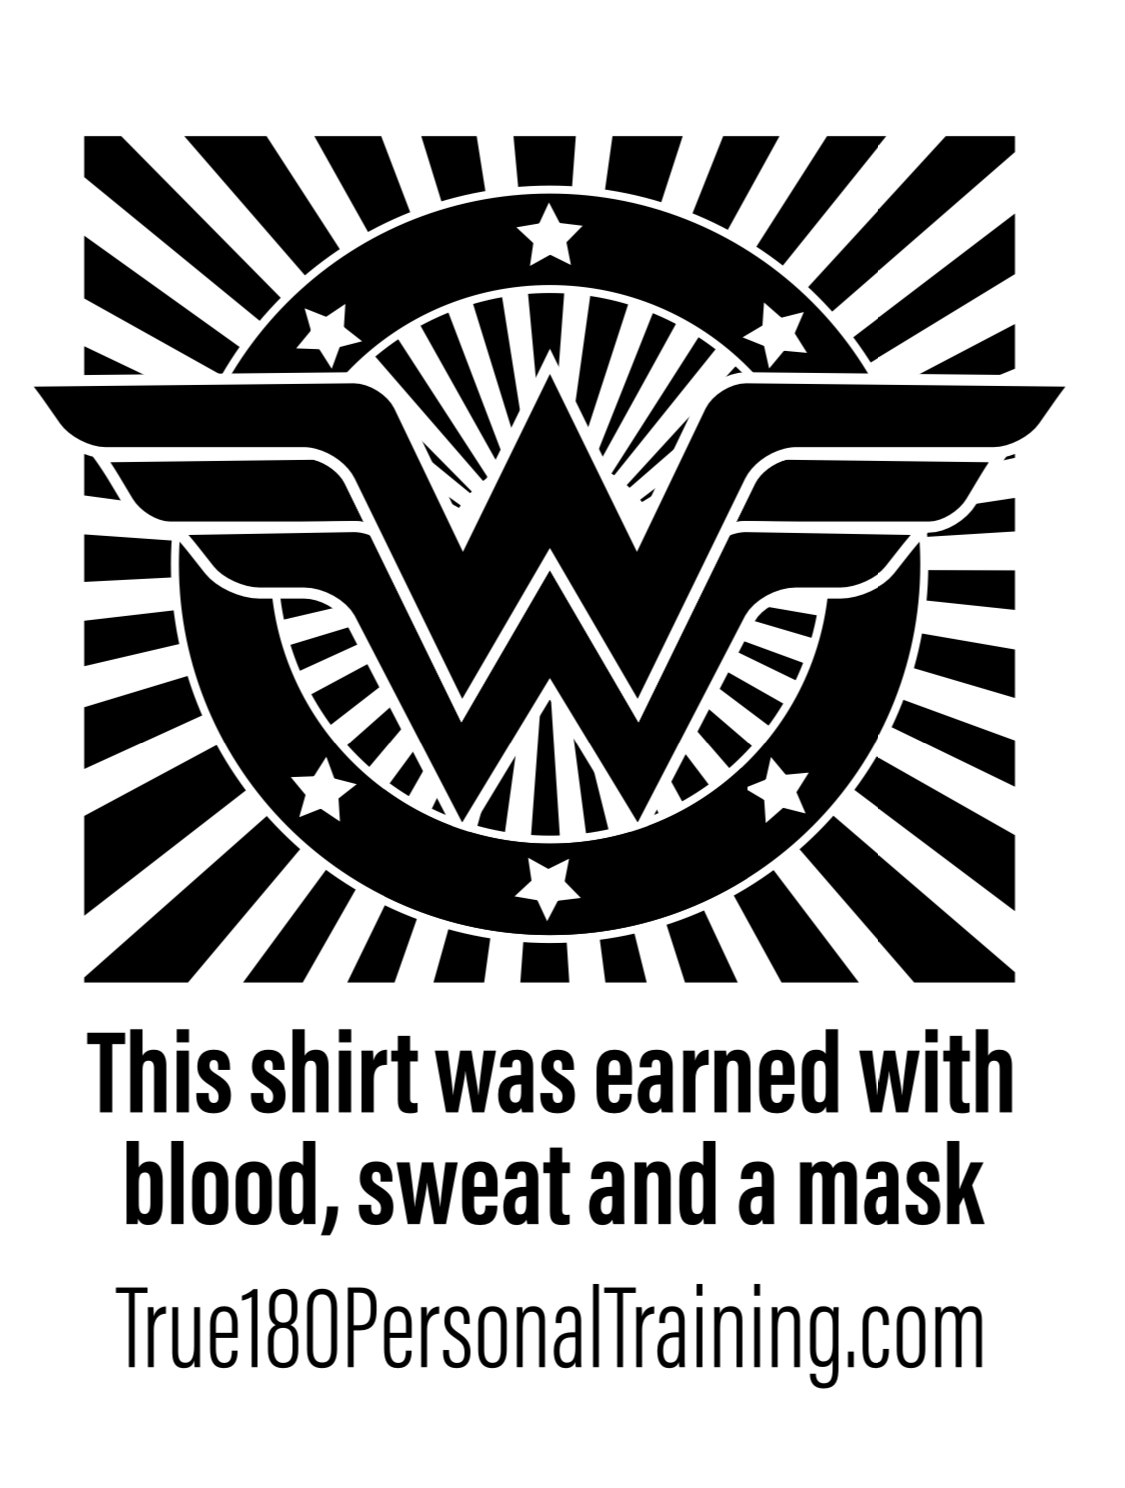 Are You a Workout Warrior?